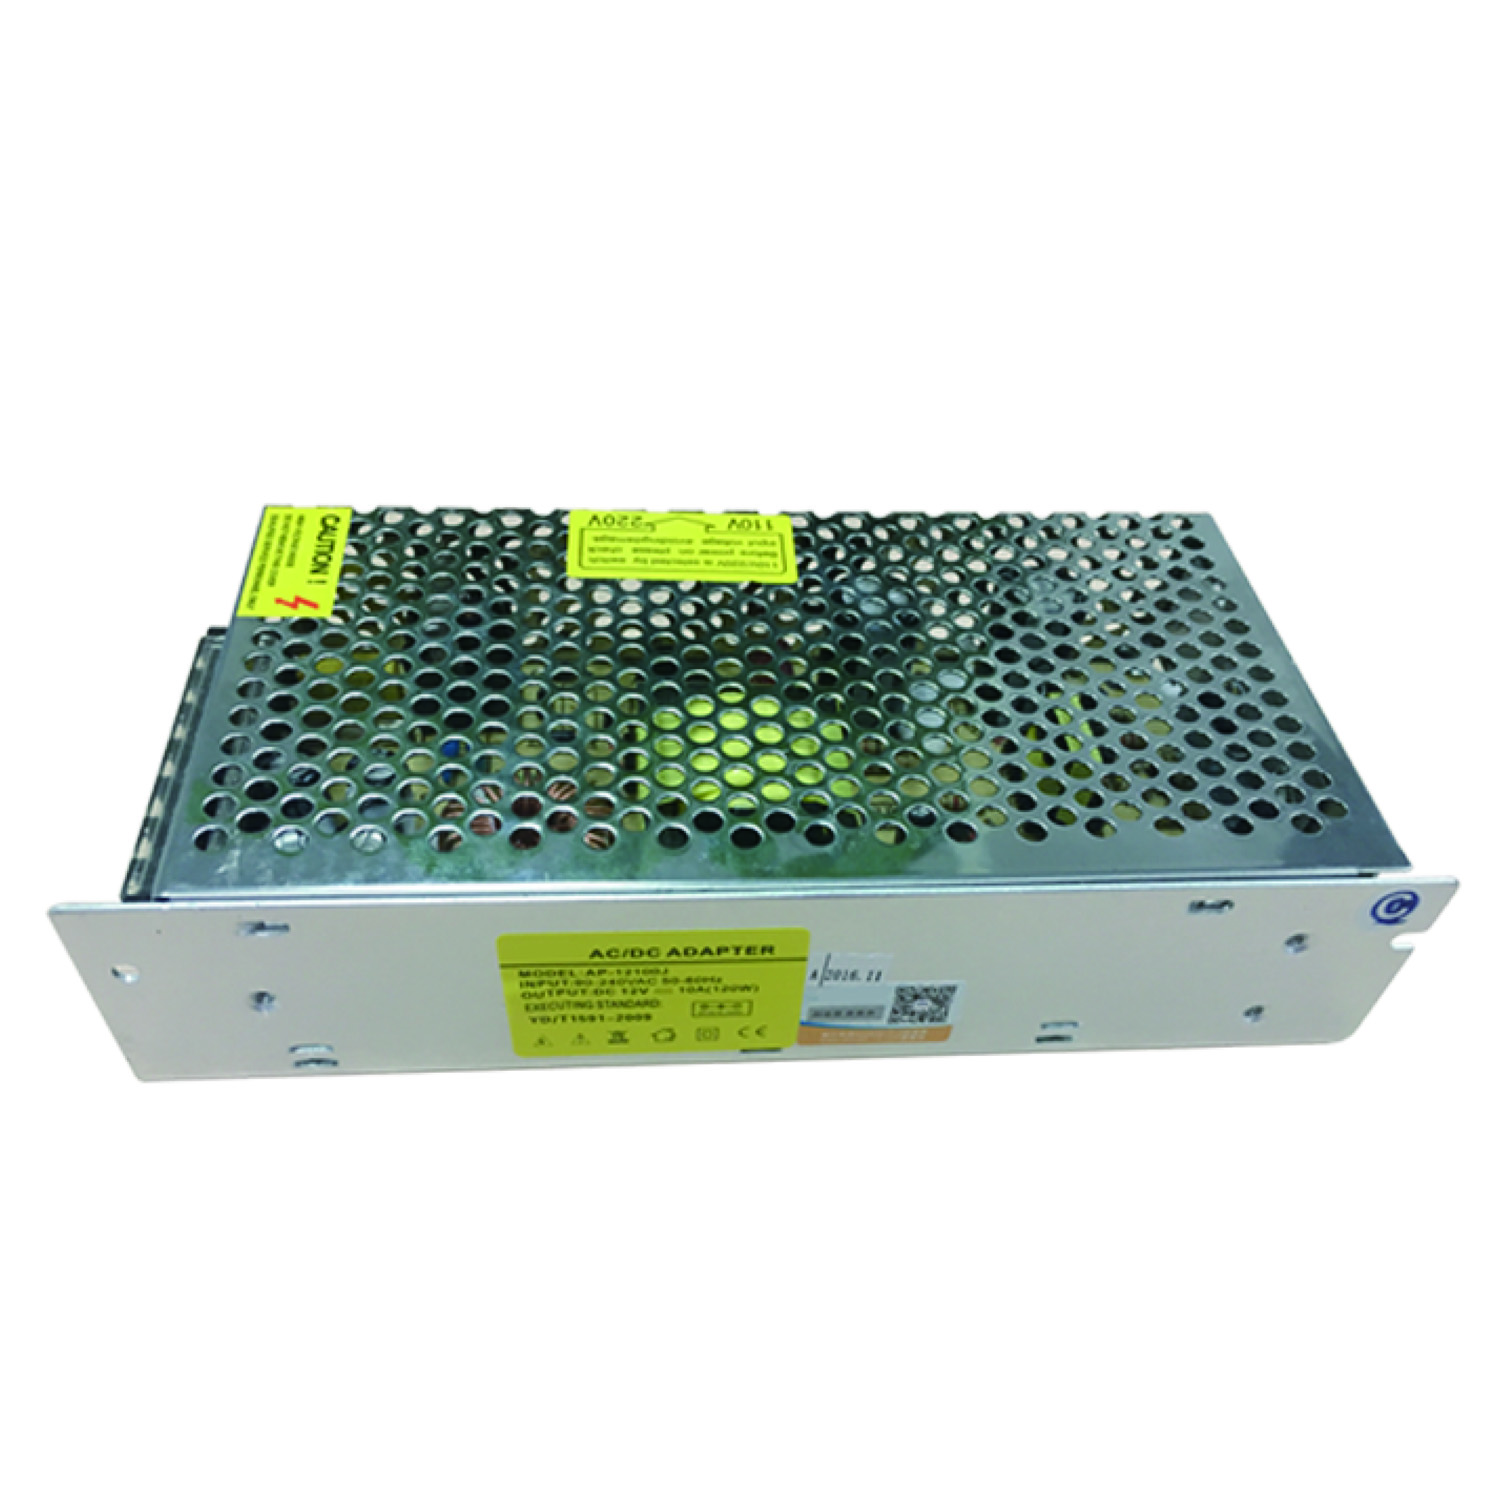 Slim 120W LED Industrial Power Supply 12V 10A, ingle Output and Multiple Output LED Power Supply